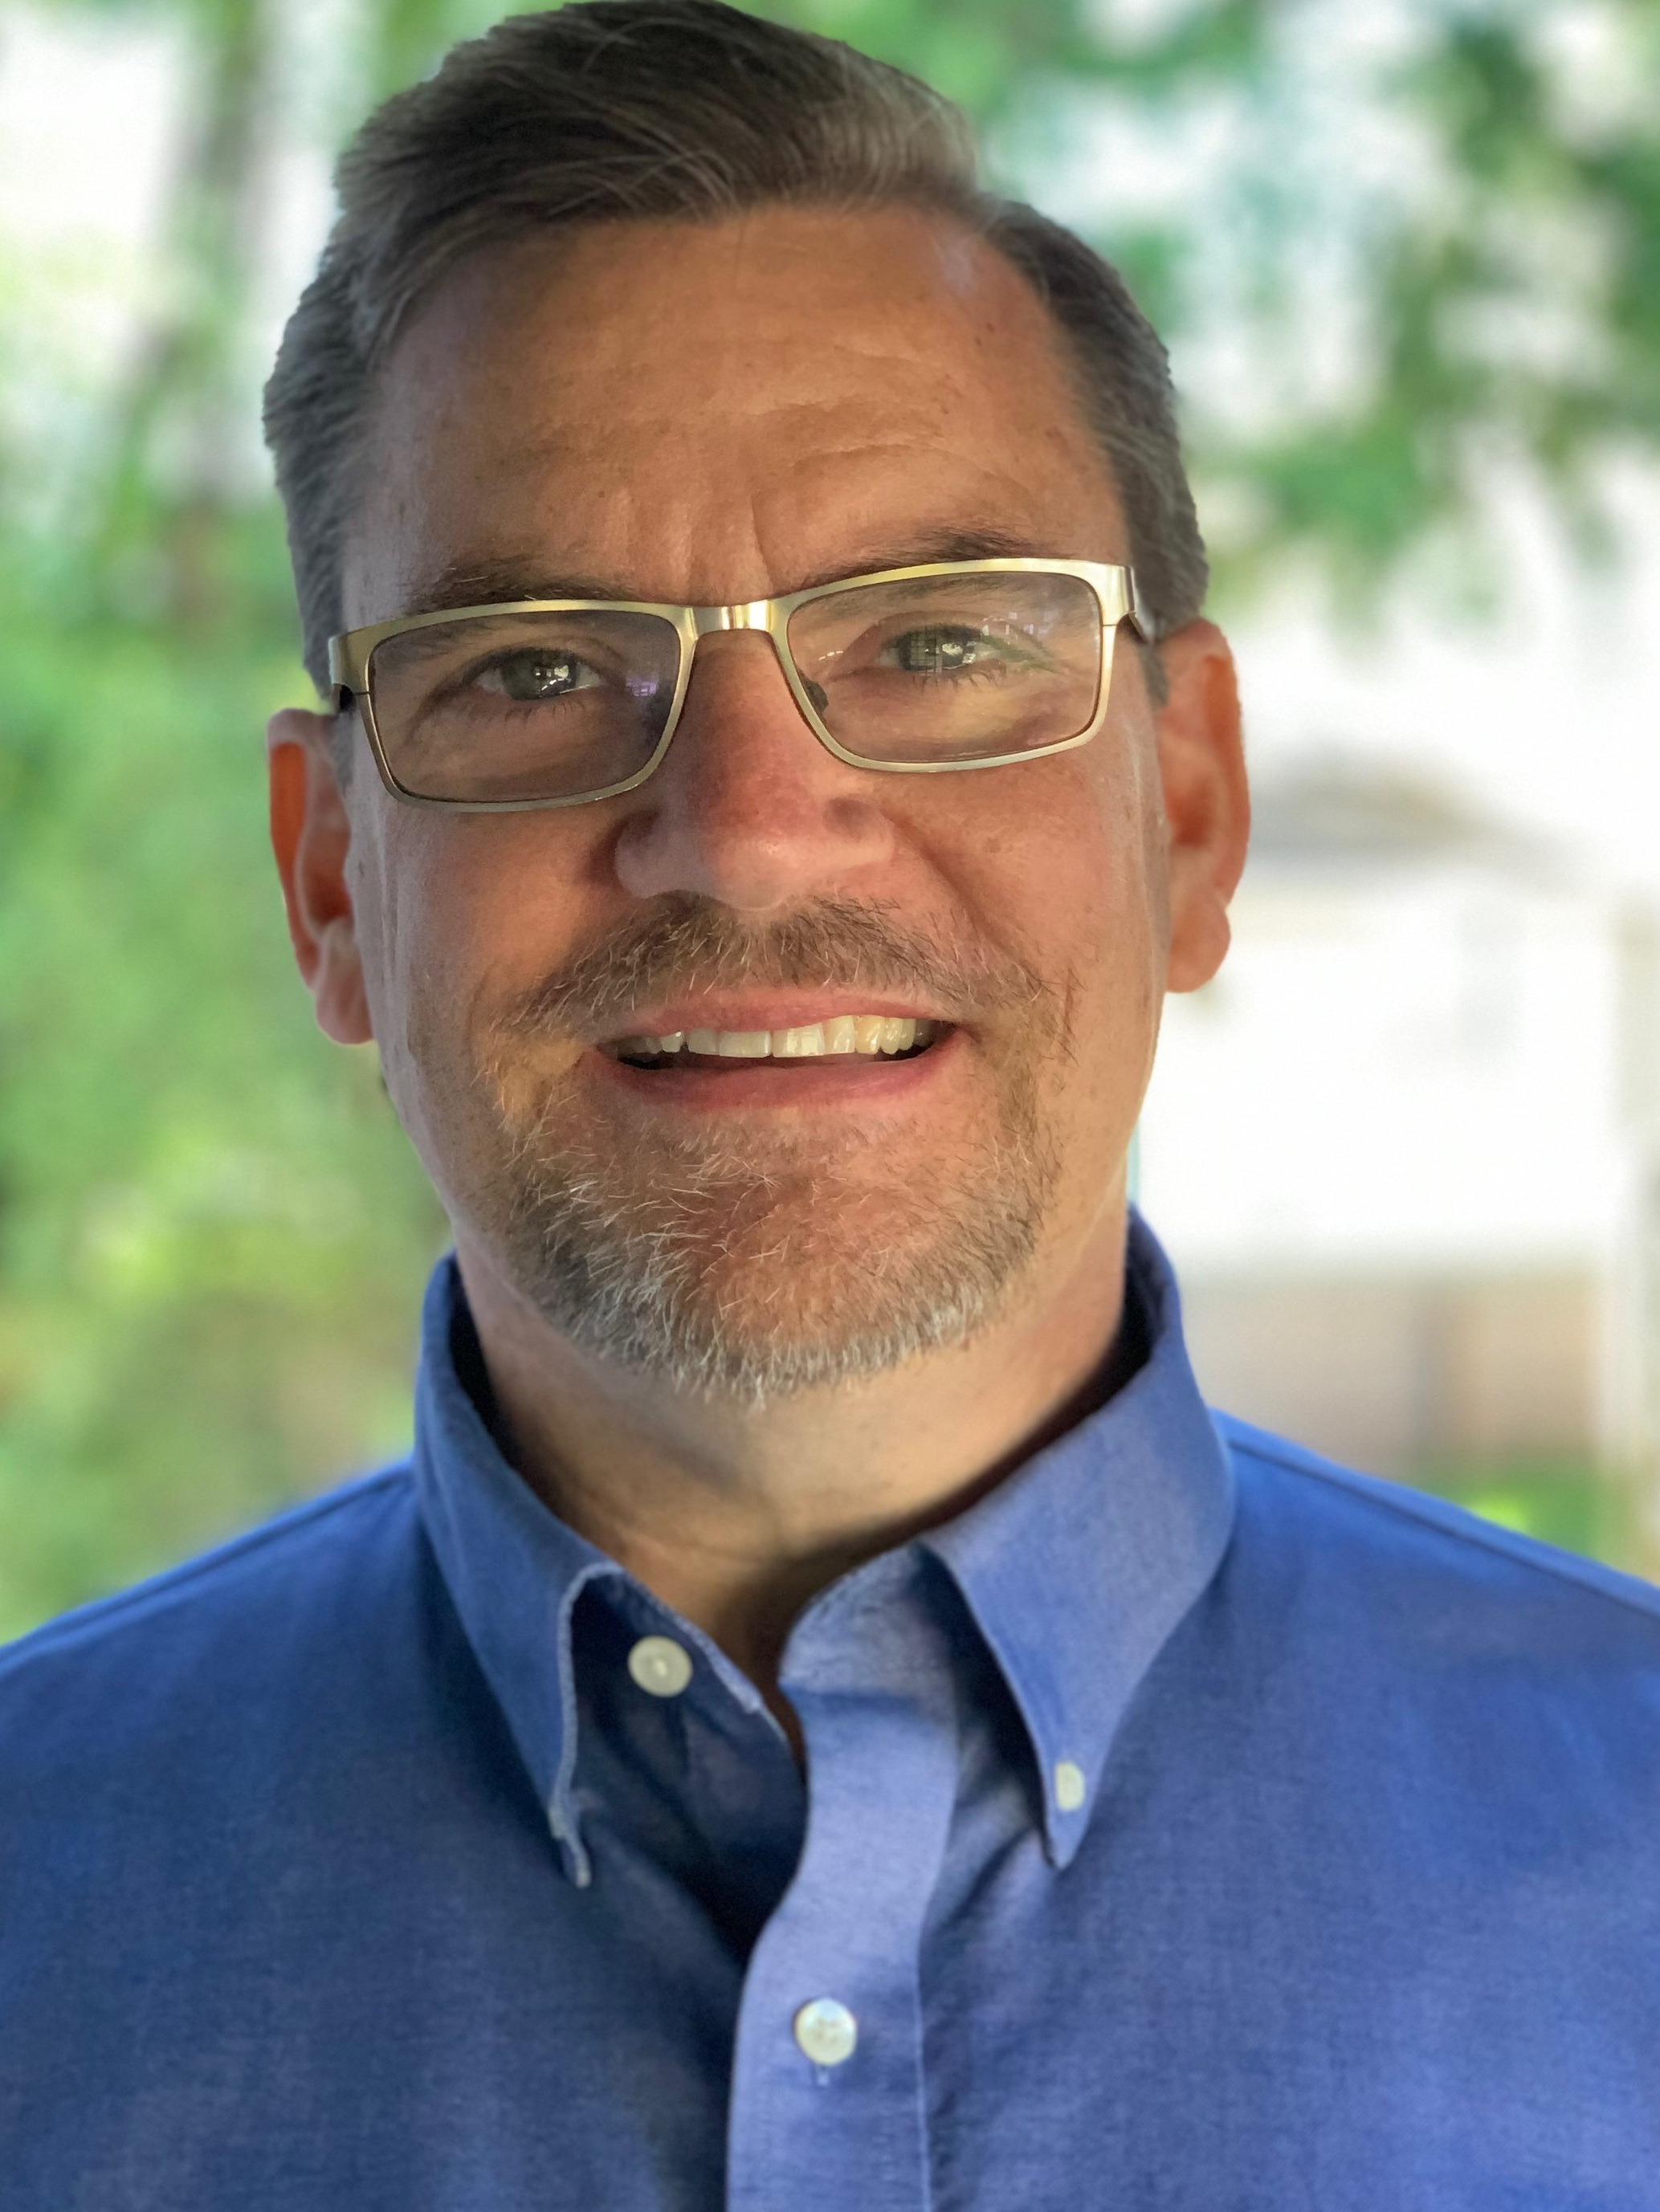 David SailerPartner - David is a long-time organizer, advocate, coach and organizational development strategist.He has a background in labor, housing, education and political organizing. David has worked across the US and in Central America teaching and training organizers.